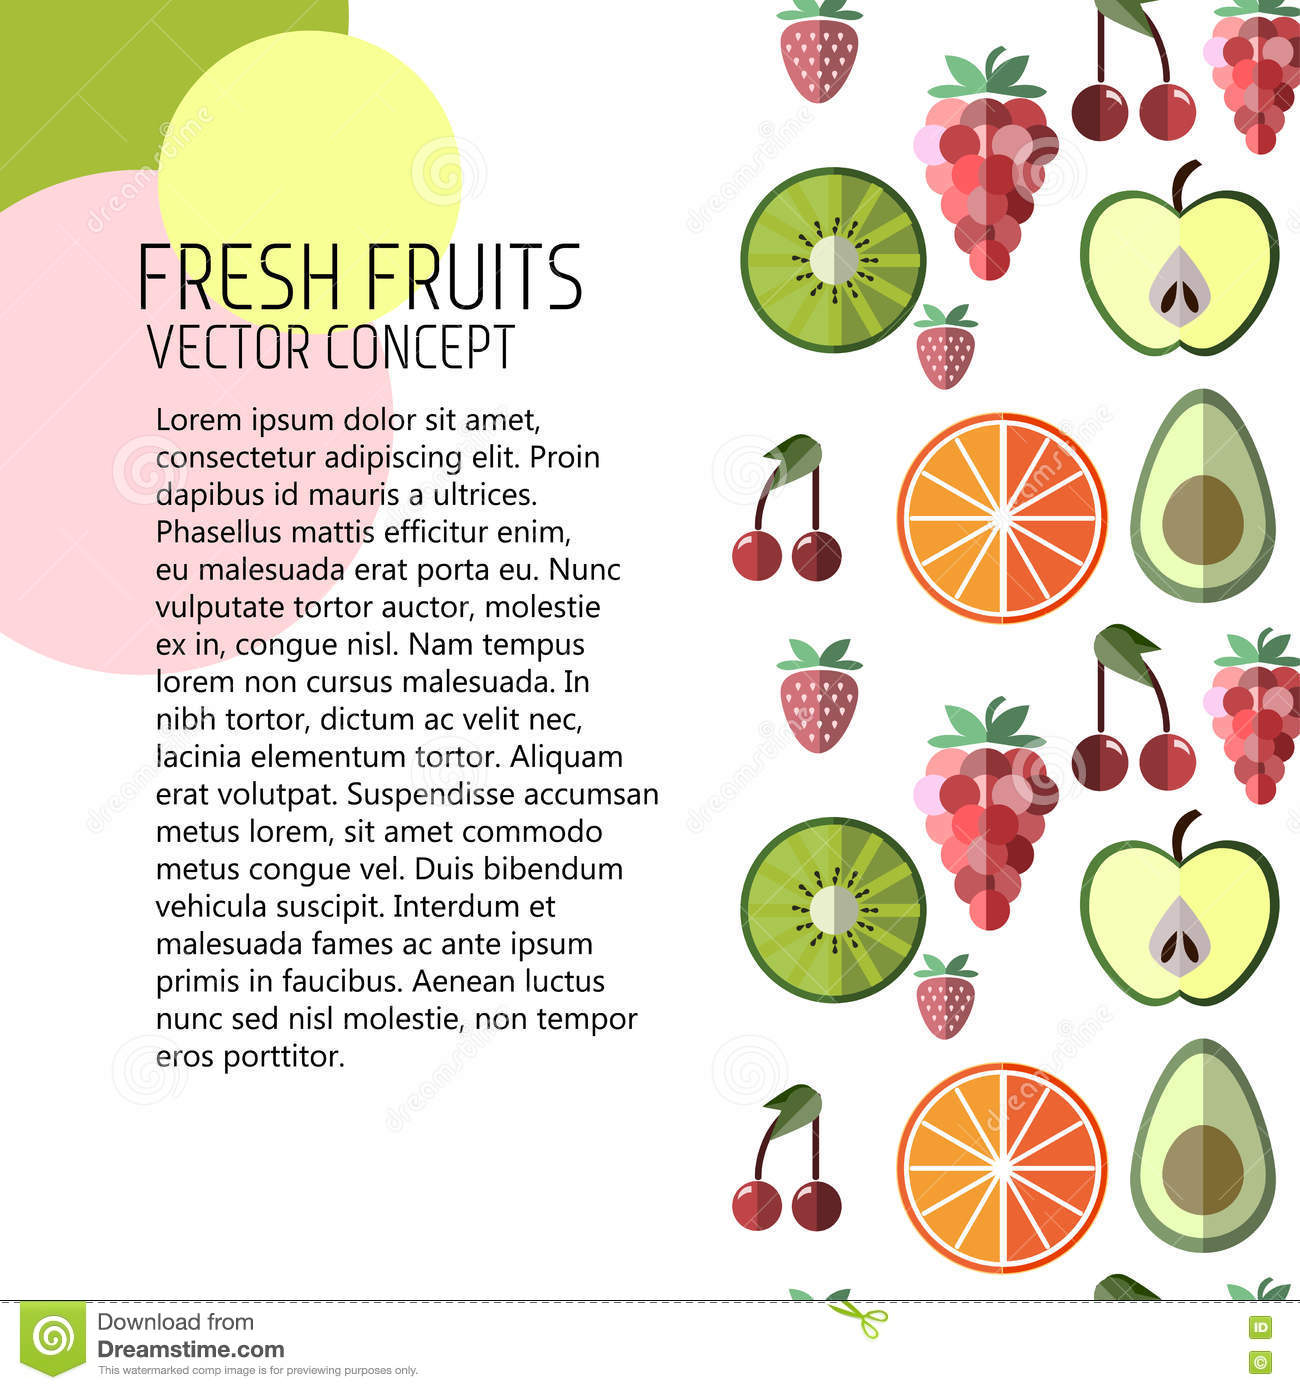 Healthy food: a selection of sites